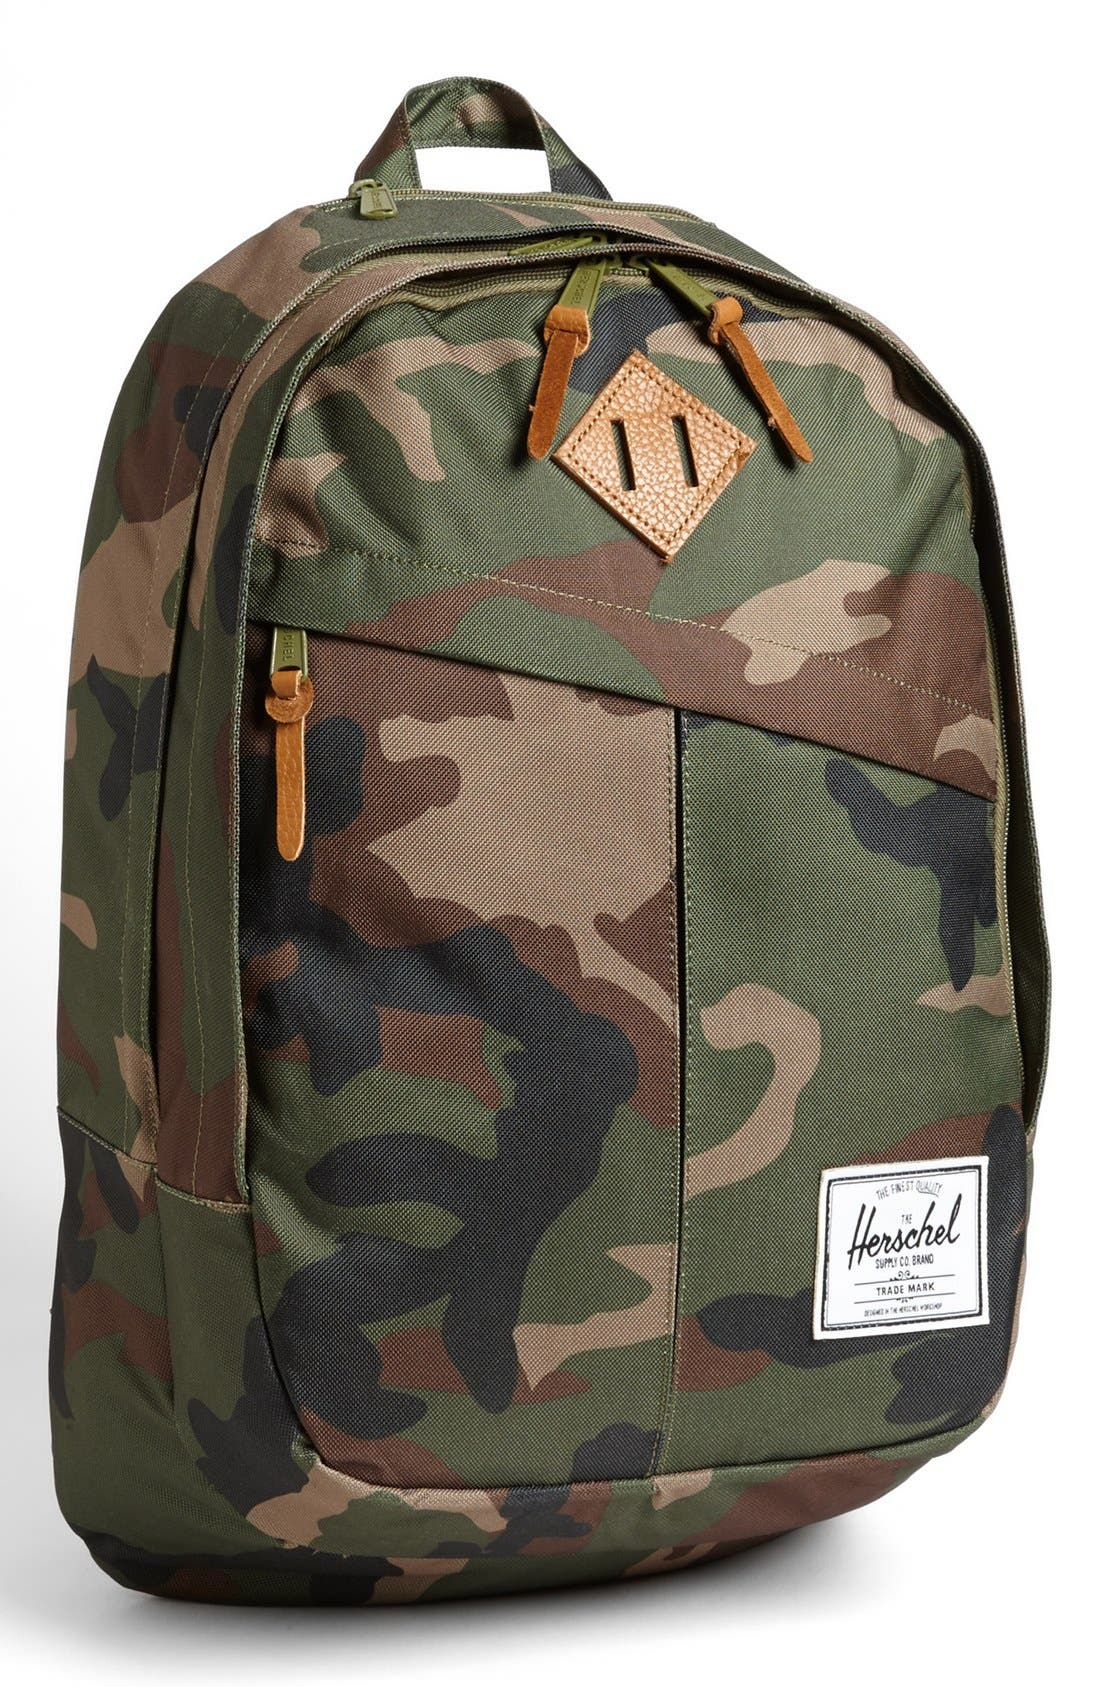 Alternate Image 1 Selected - Herschel Supply Co. 'Sierra' Backpack